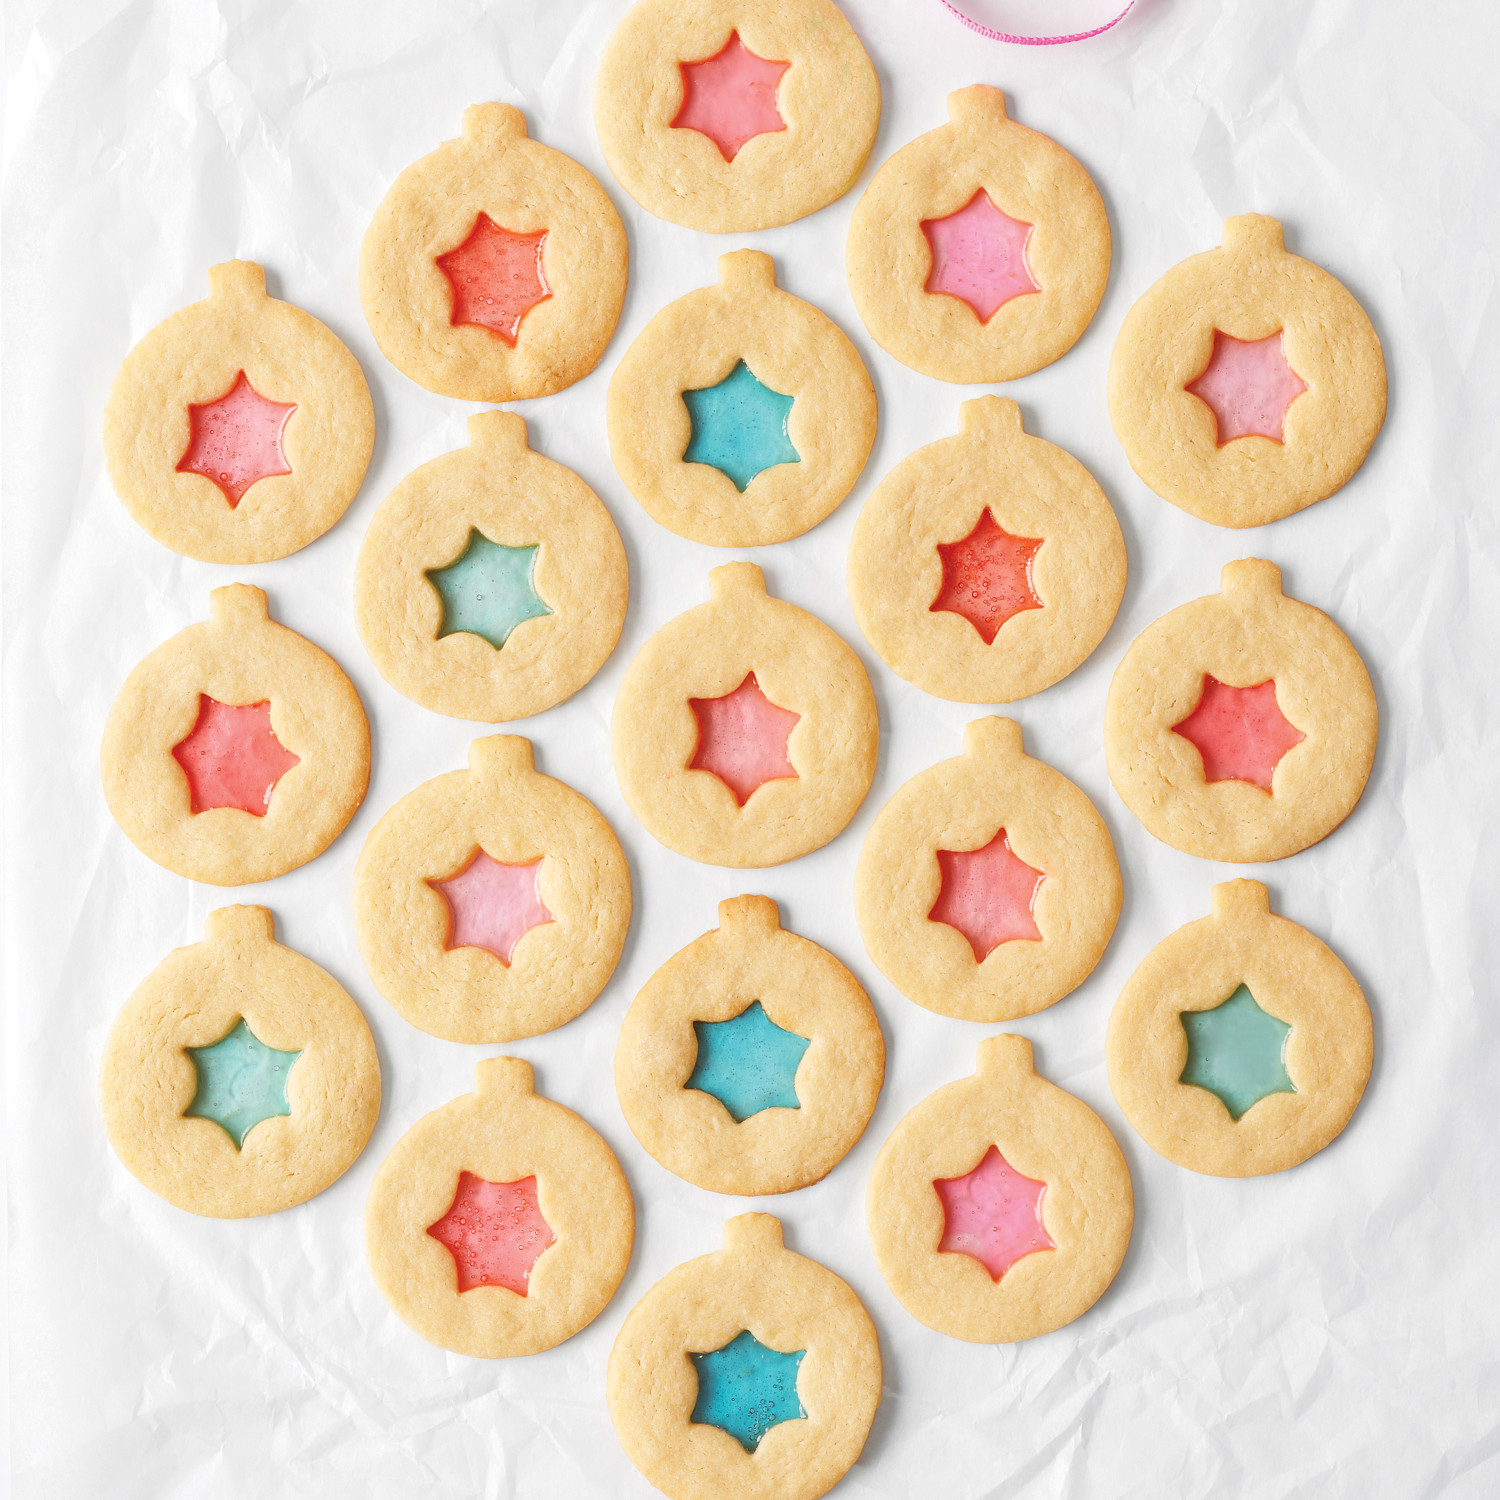 Stained glass cookie recipes